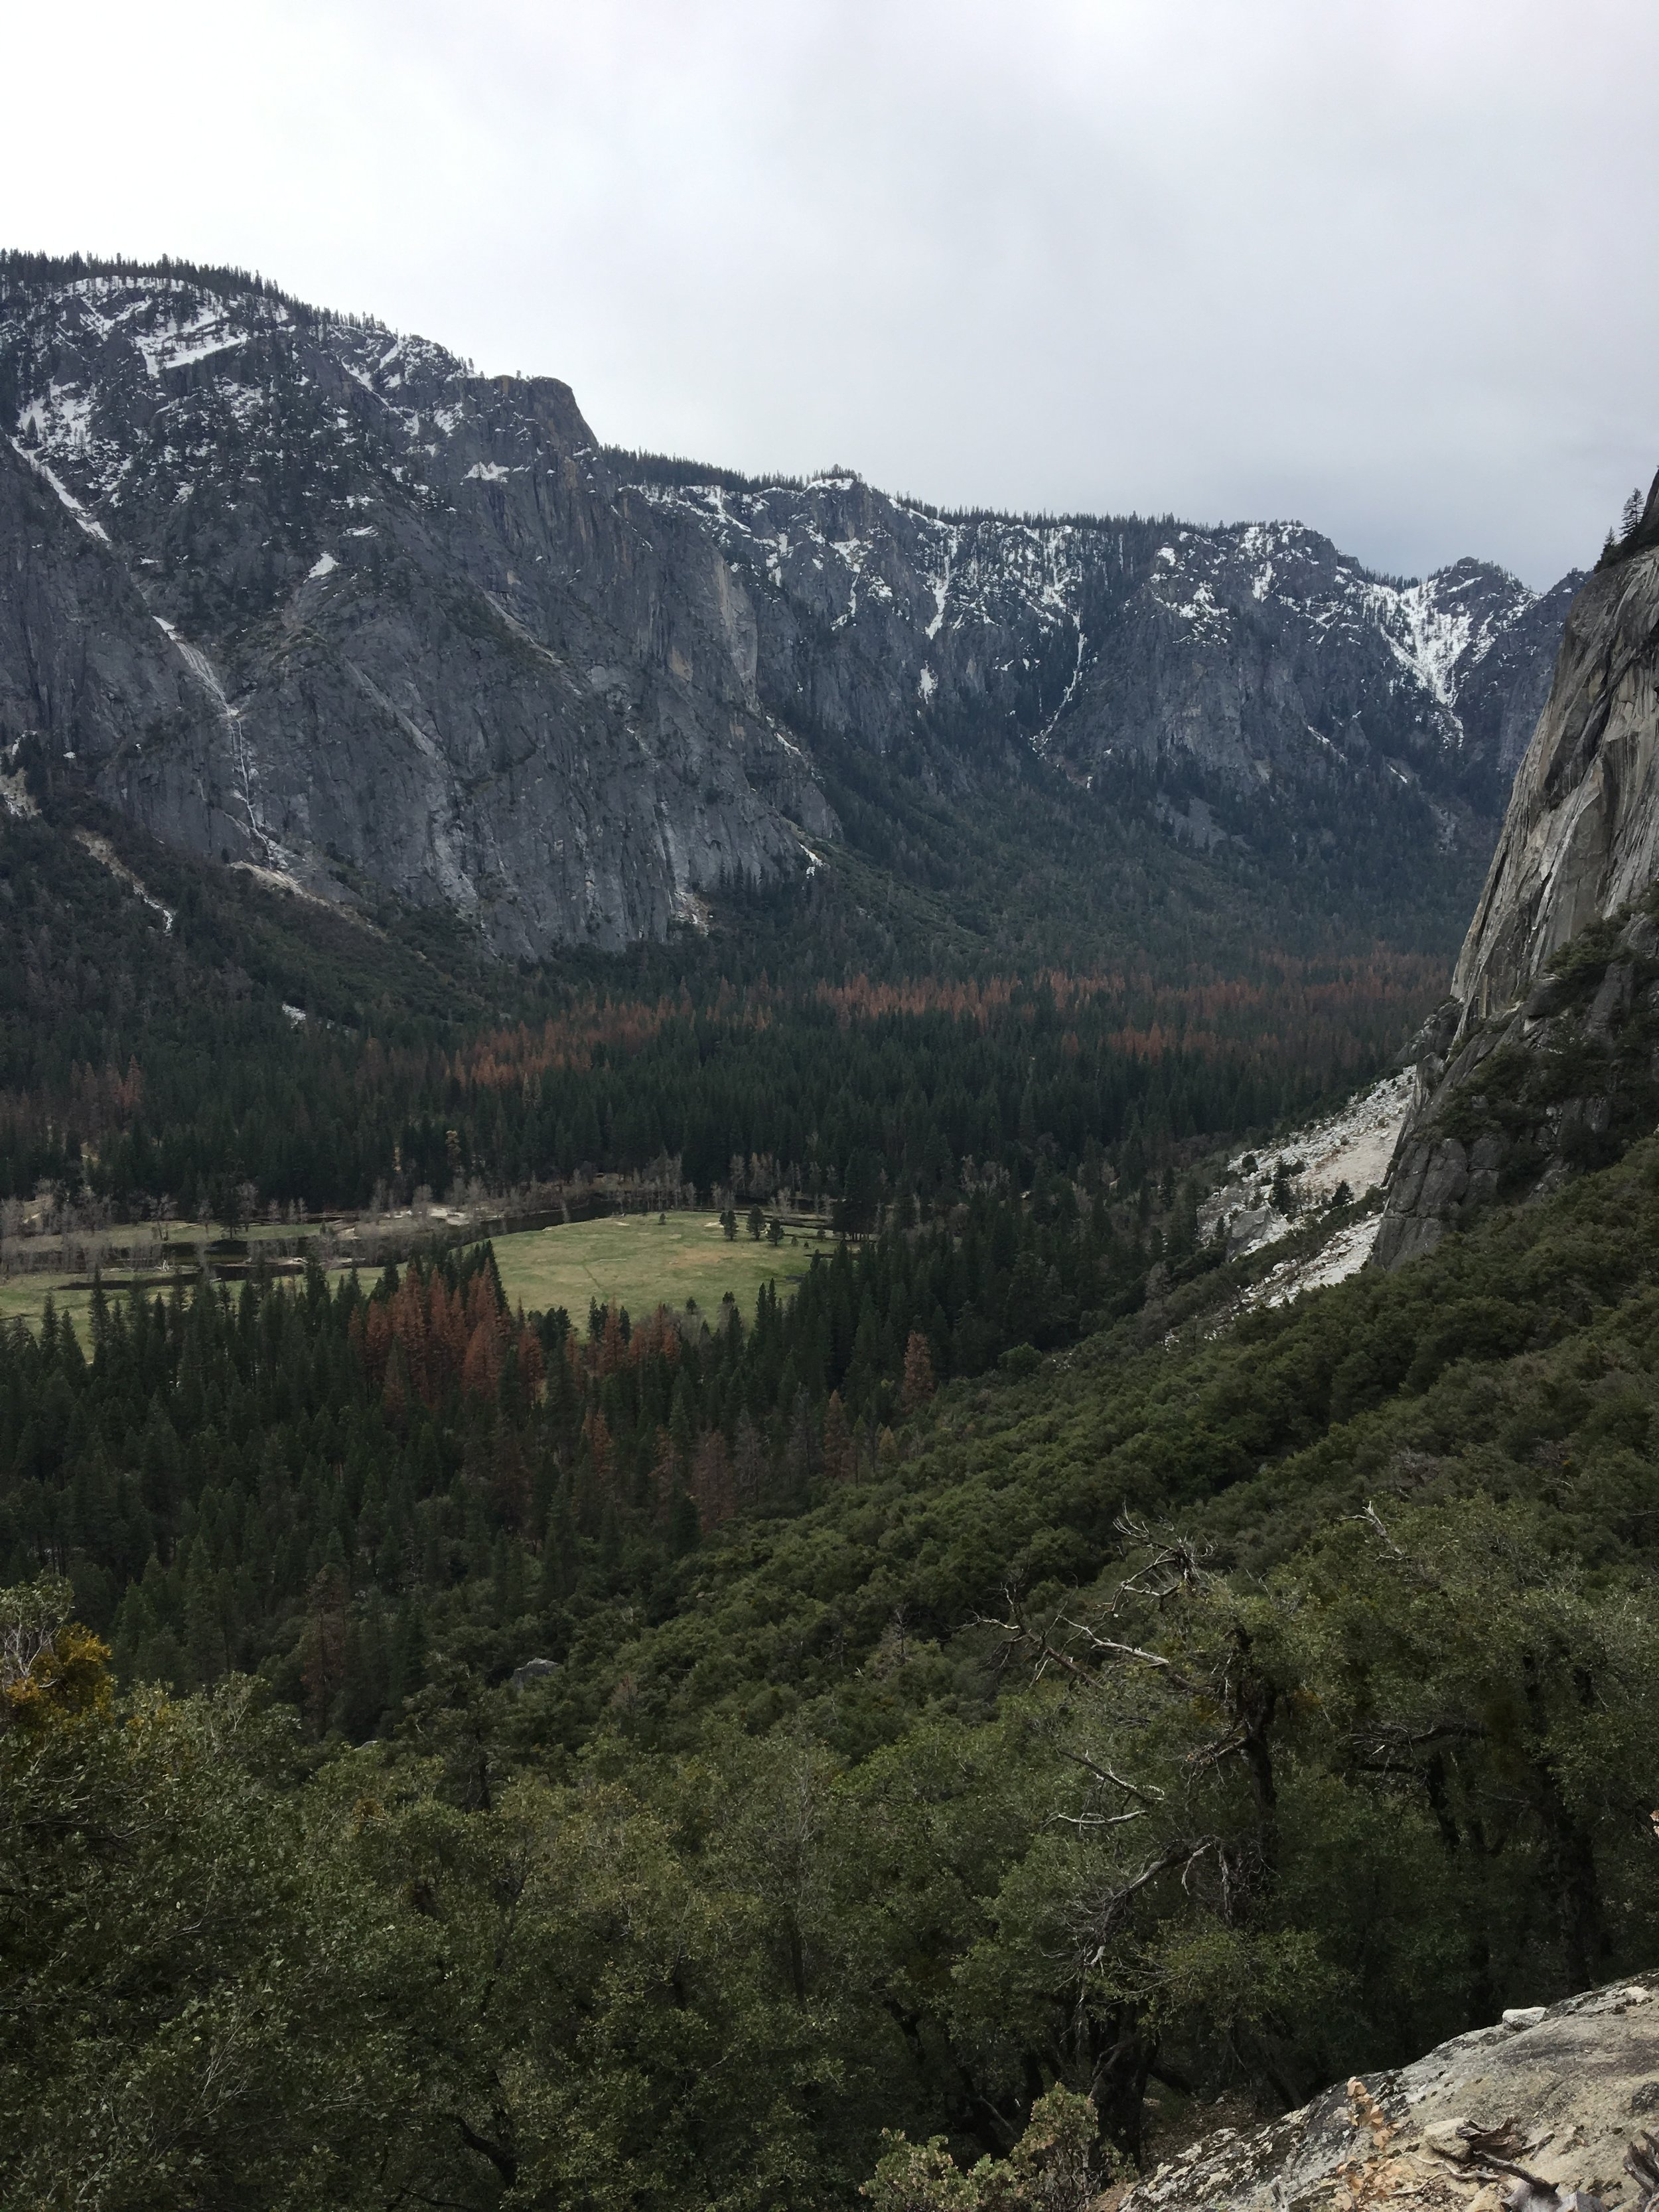 Views from the Yosemite Falls Trail